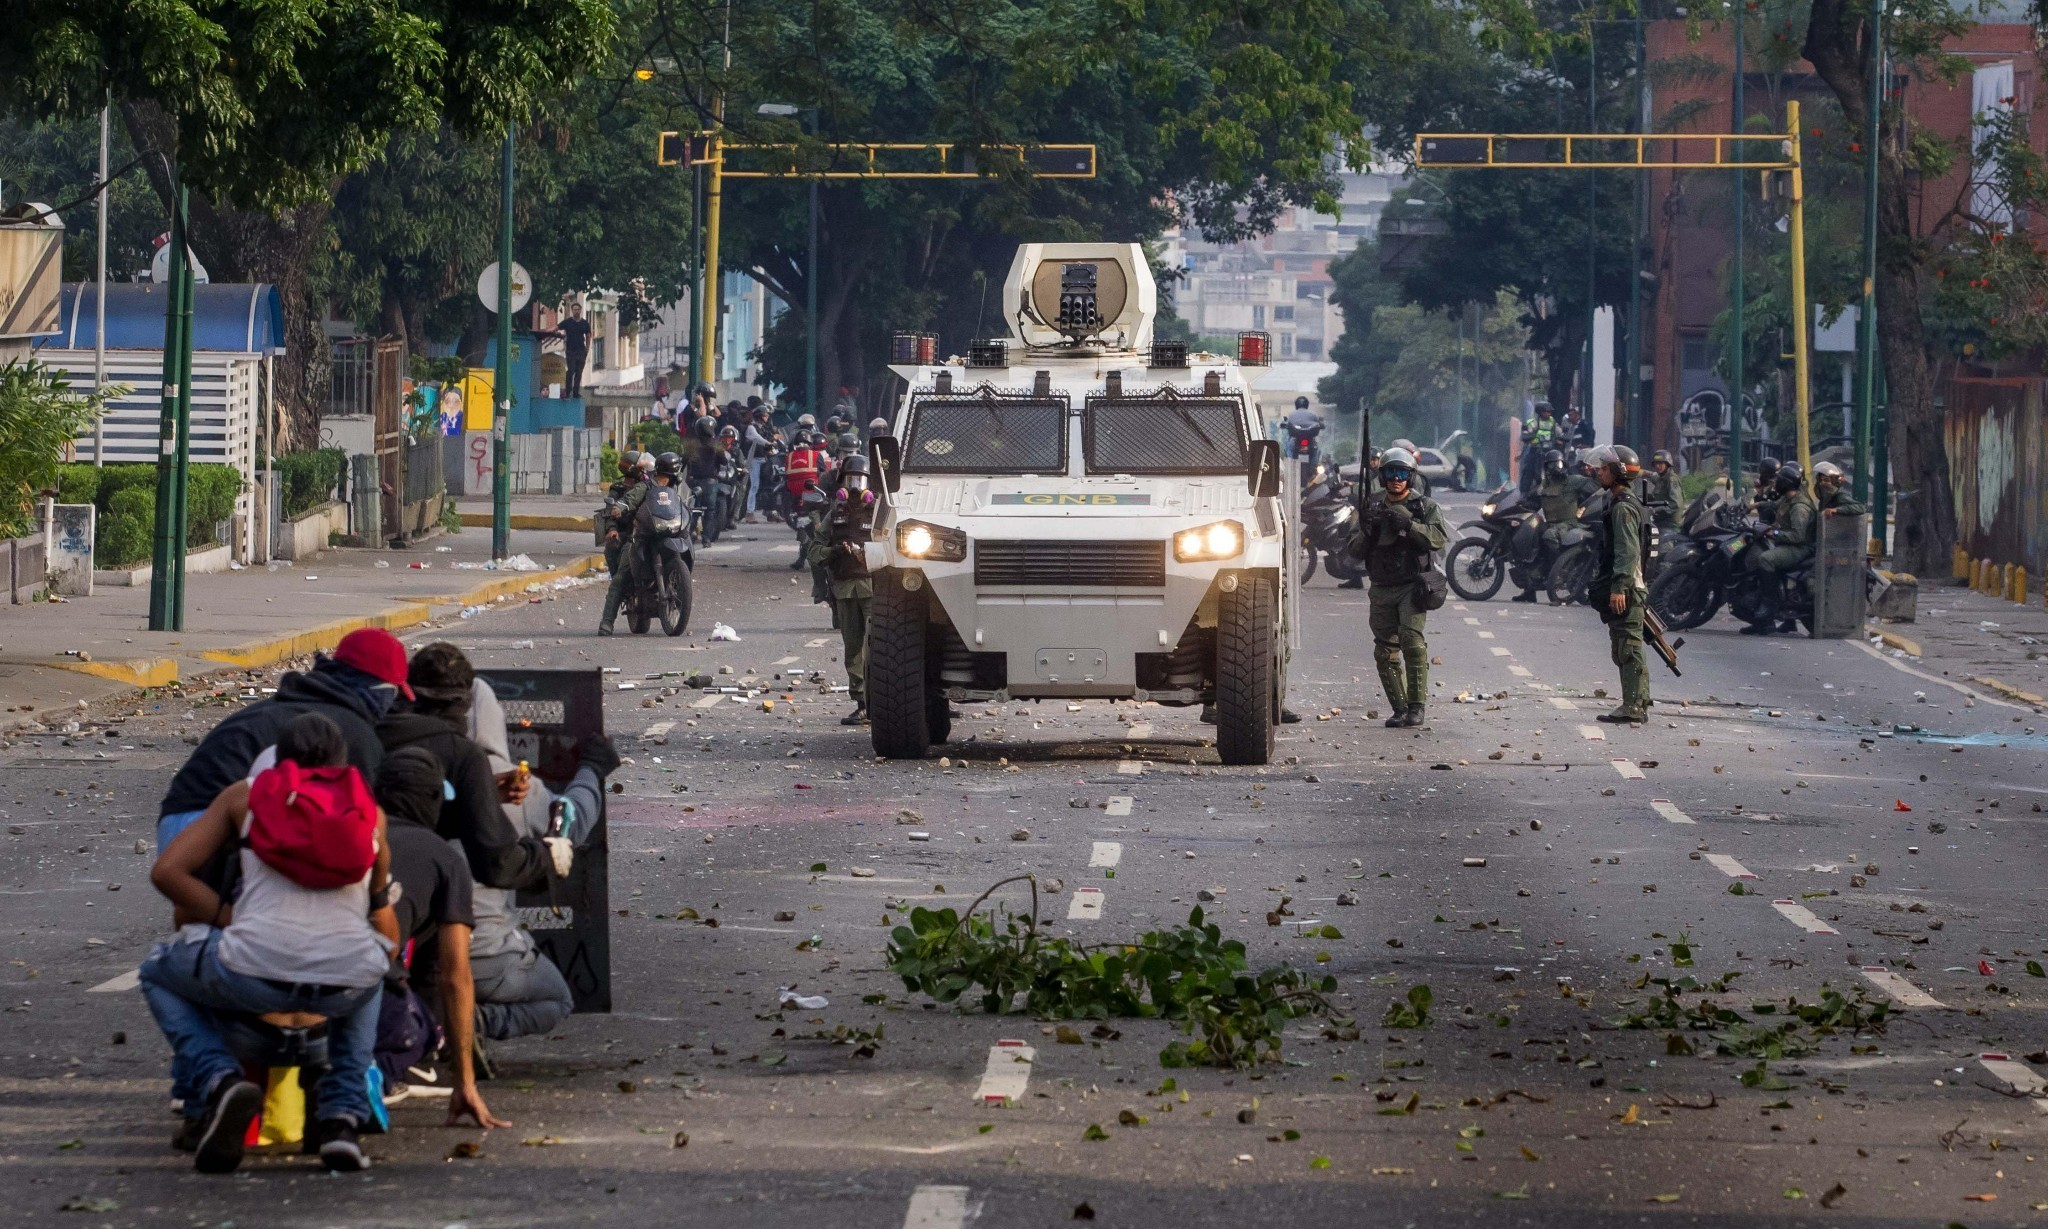 Deaths and injuries reported amid 'mother of all marches' in Venezuela